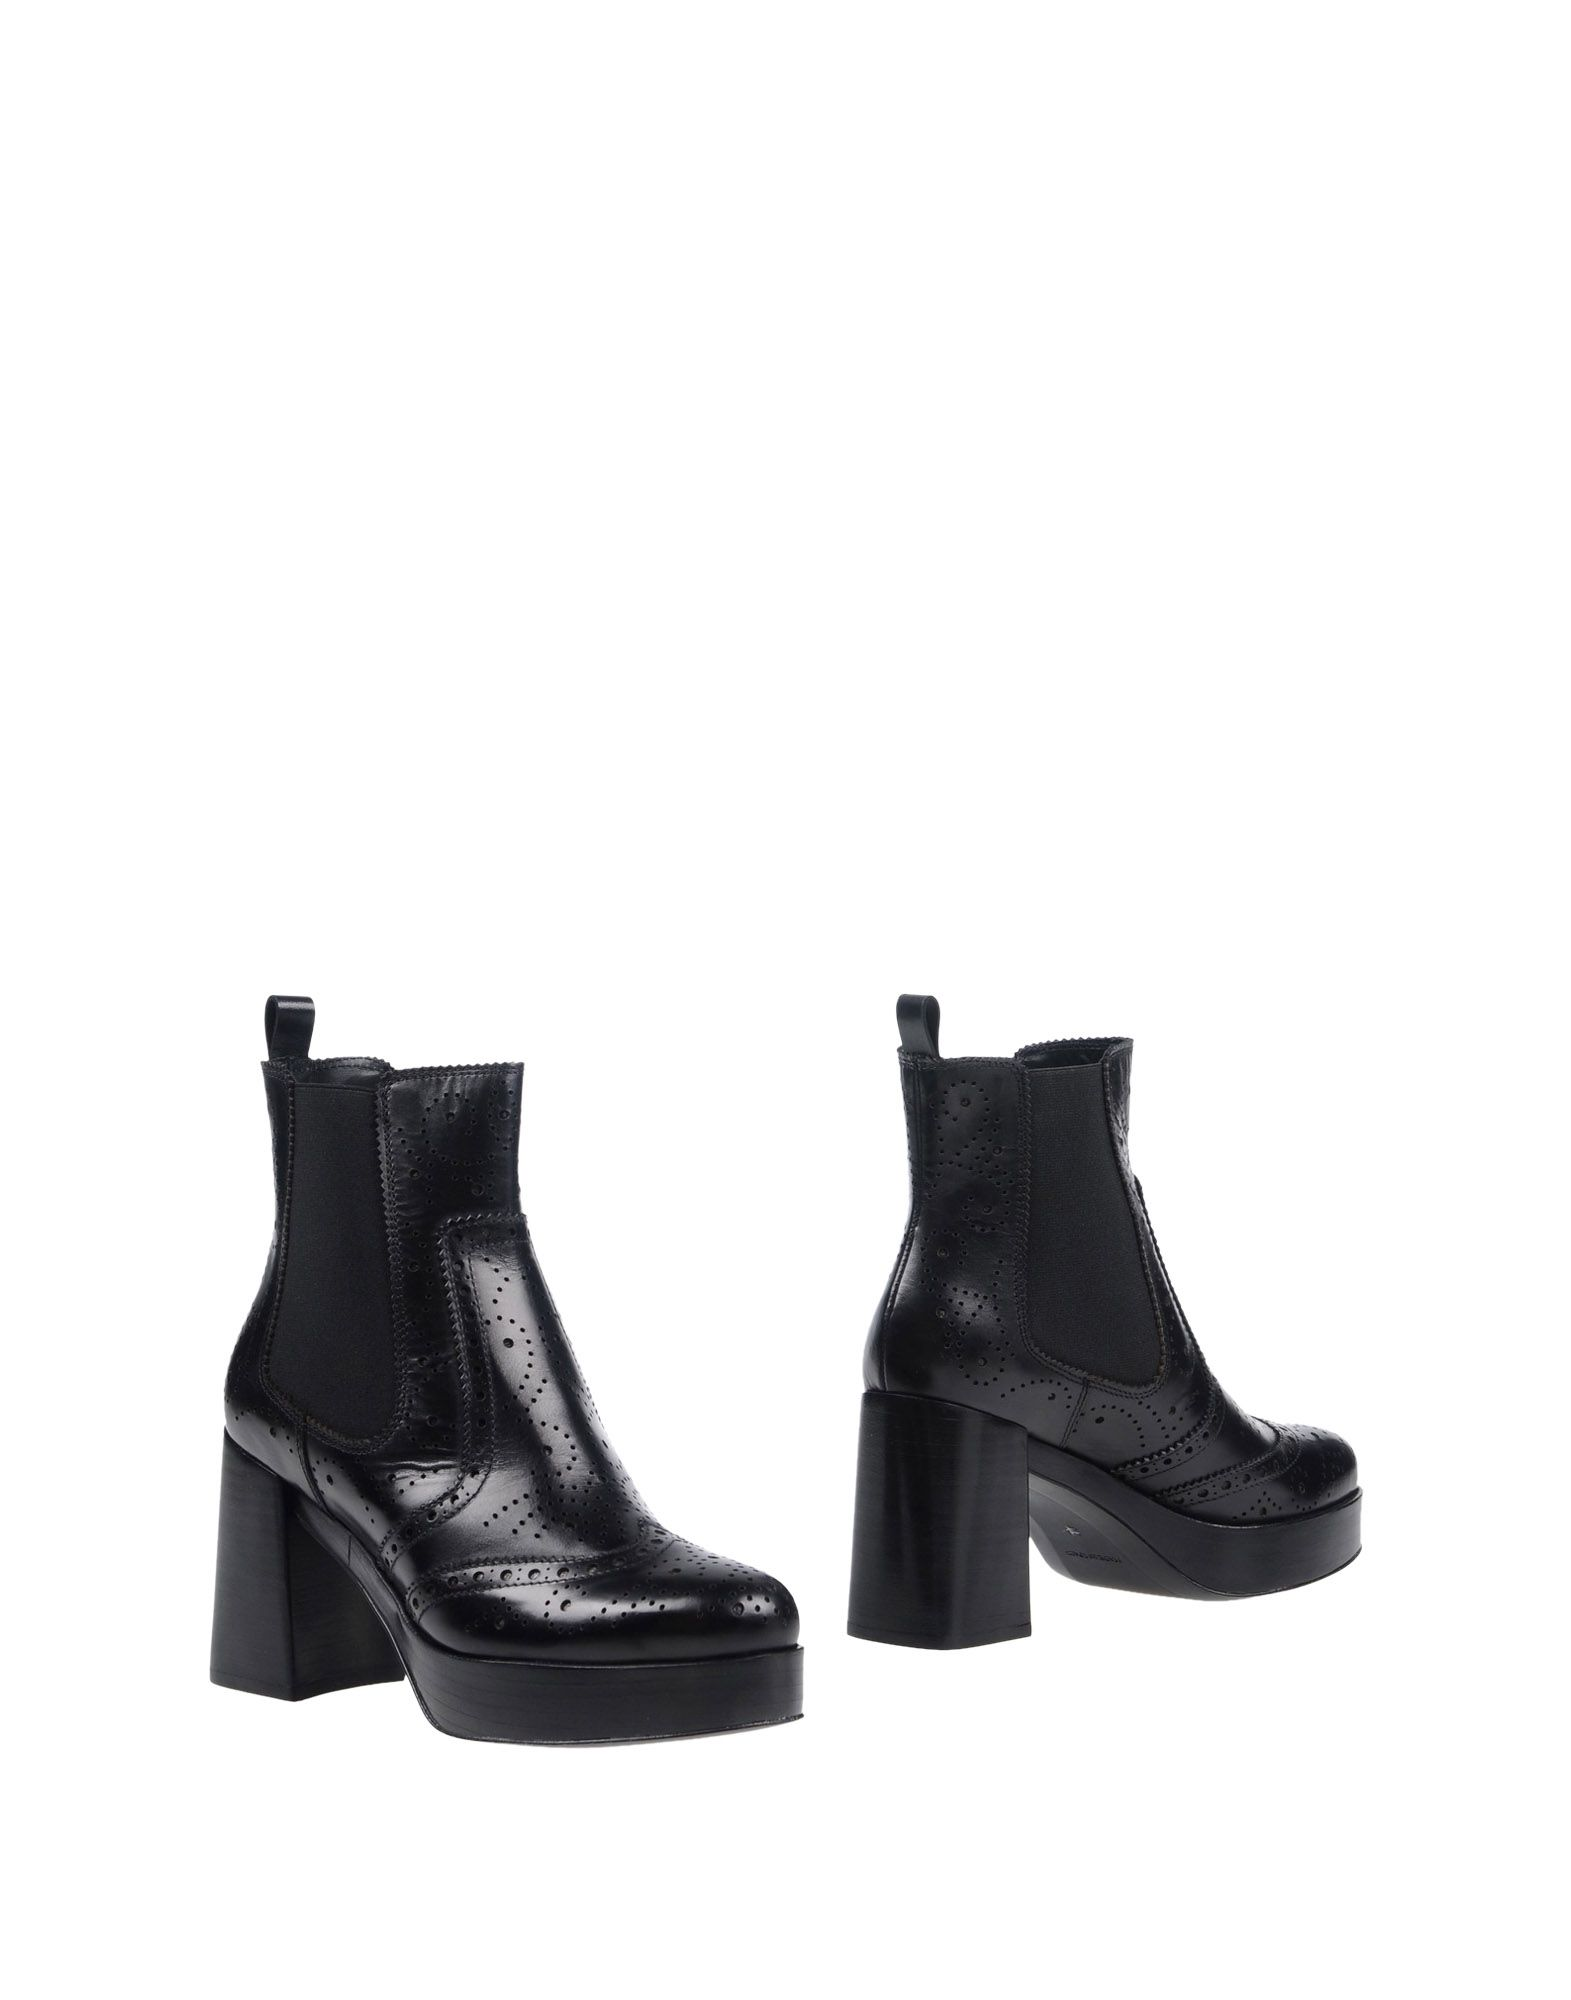 PONS QUINTANA Ankle Boot in Black